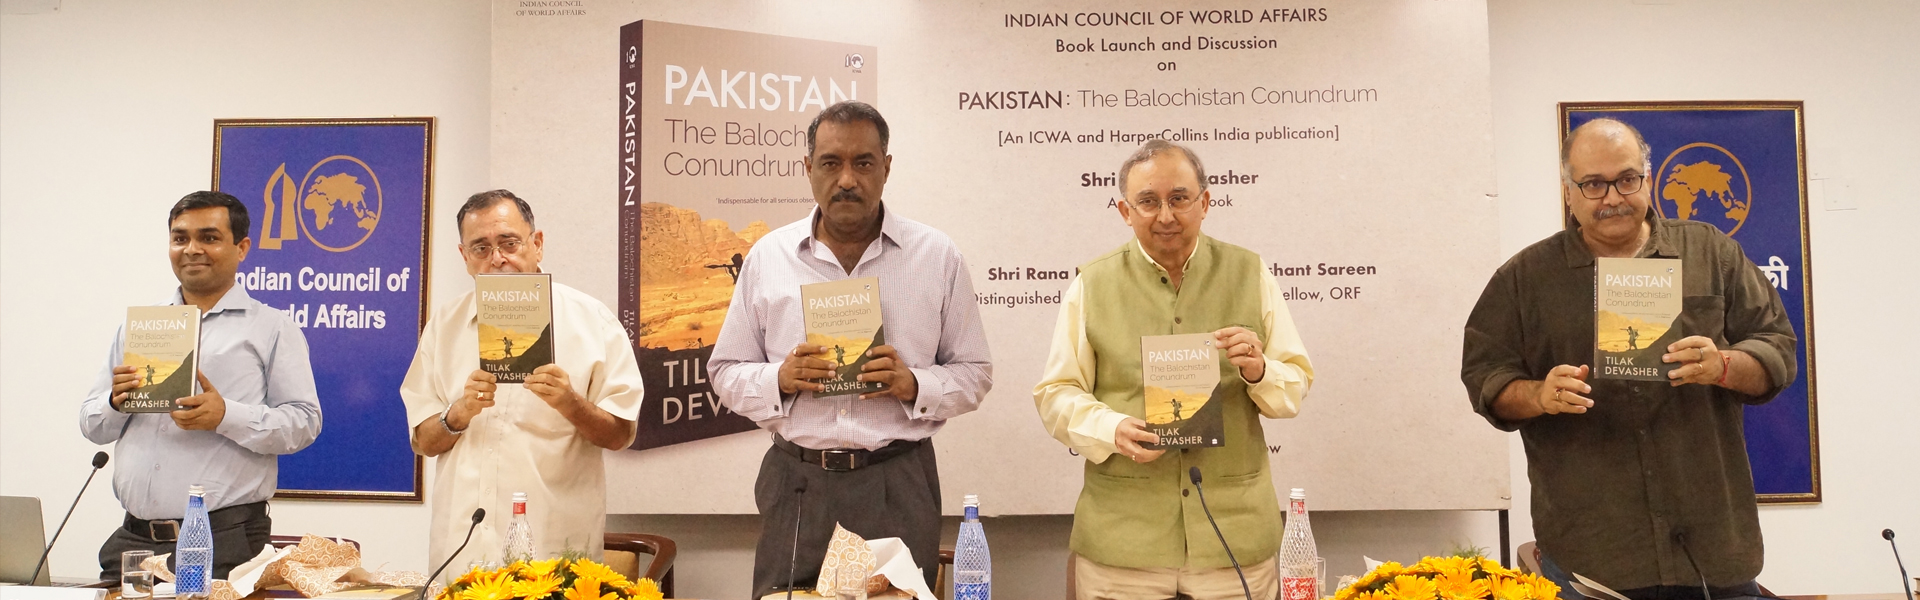 Book Launch and Discussion on PAKISTAN: The Balochistan Conundrum, [An ICWA and HarperCollins India Publication], by Shri Tilak Devasher, Author of the book, Sapru House, 22 August 2019.